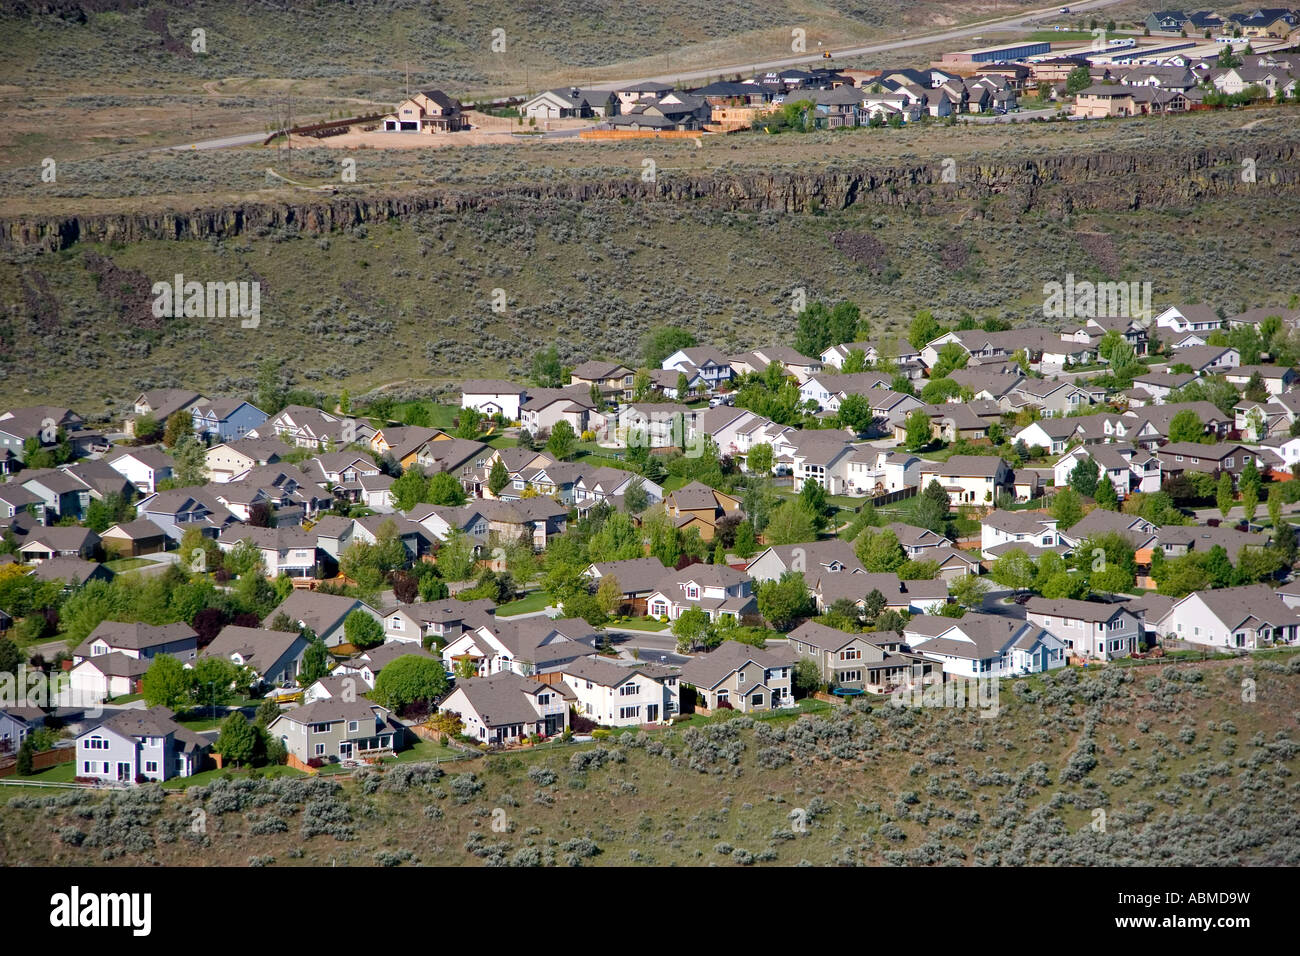 Aerial view of a housing subdivision created by urban sprawl in Boise Idaho - Stock Image